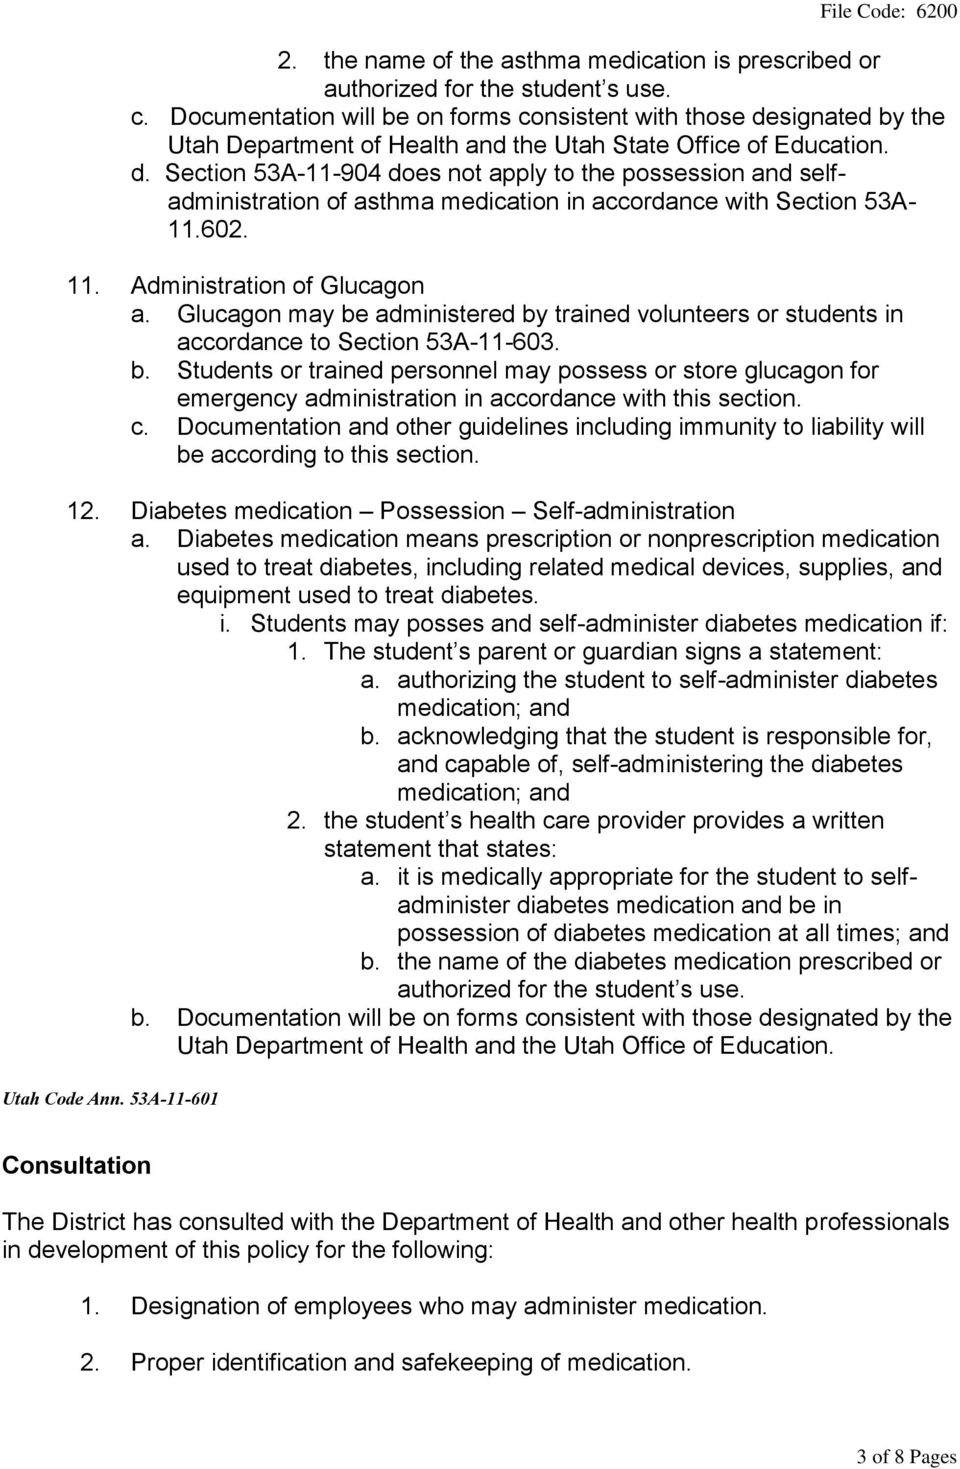 602. 11. Administration of Glucagon a. Glucagon may be administered by trained volunteers or students in accordance to Section 53A-11-603. b. Students or trained personnel may possess or store glucagon for emergency administration in accordance with this section.